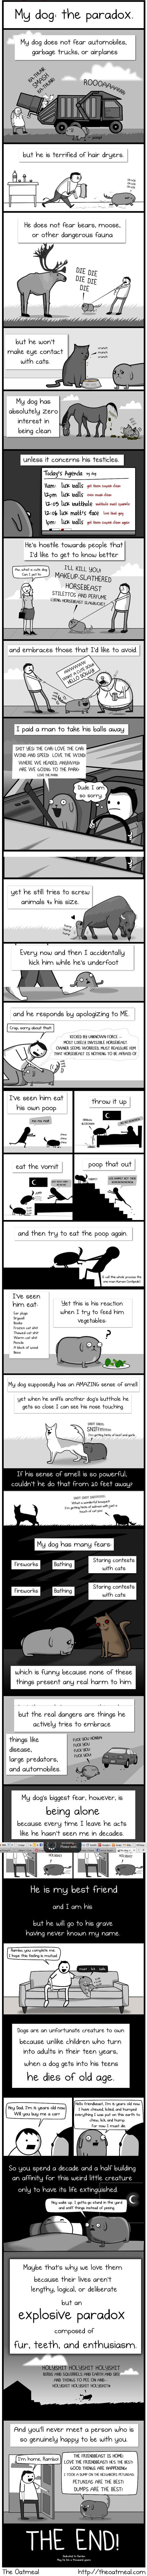 My dog, the paradox | The Oatmeal...... Funny and insightful take on the ways we love and are confused by our dogs, and vice versa.